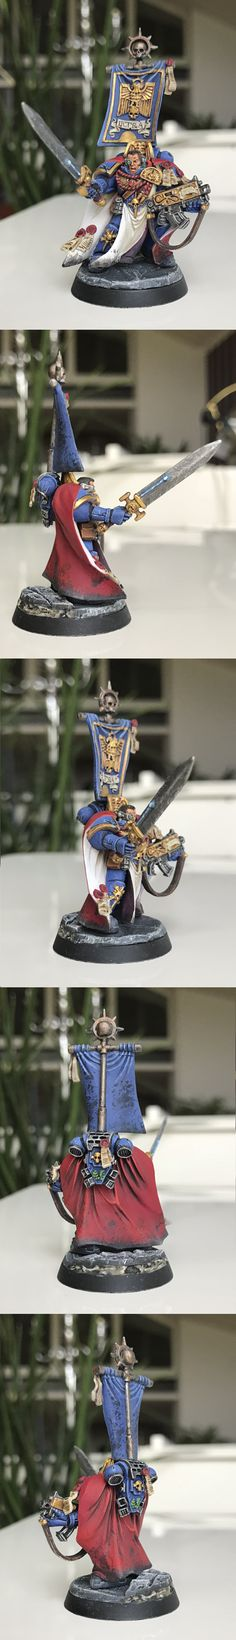 Captain of the Ultramarines